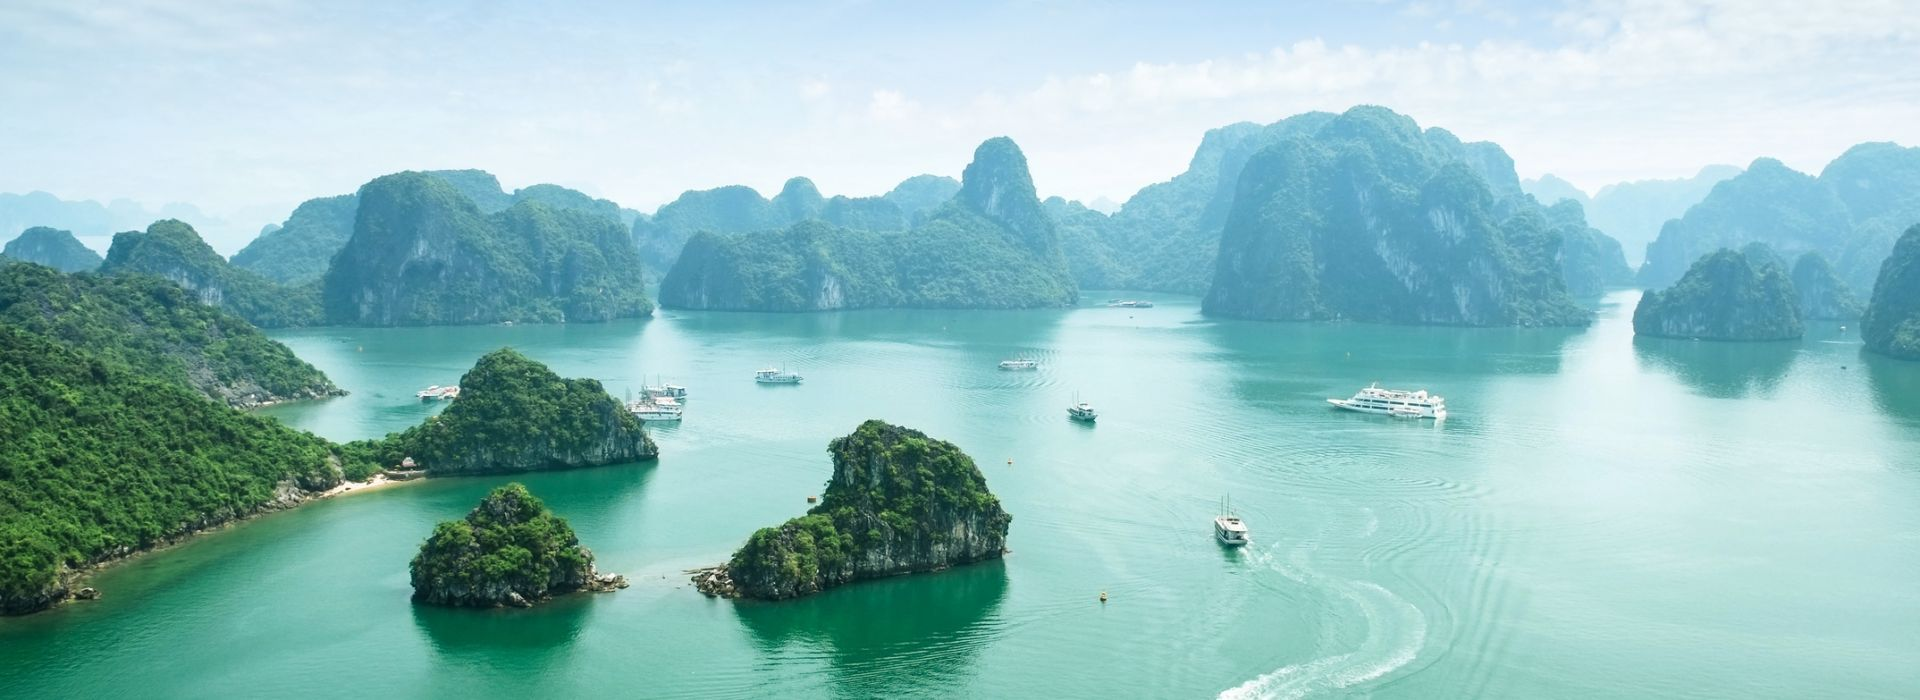 Countryside and village visits Tours in Vietnam